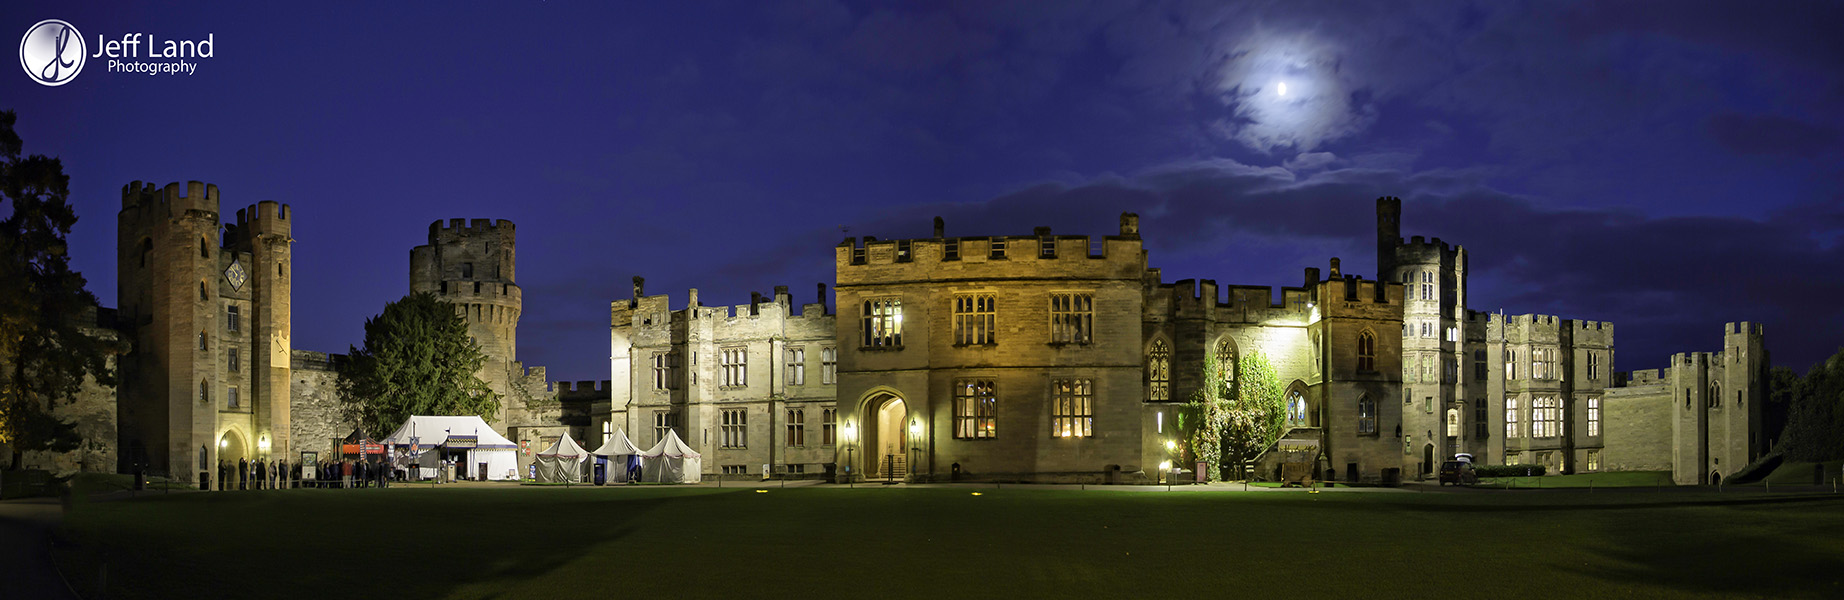 Wedding Photographer, Event Photographer, Warwick Castle, Warwickshire